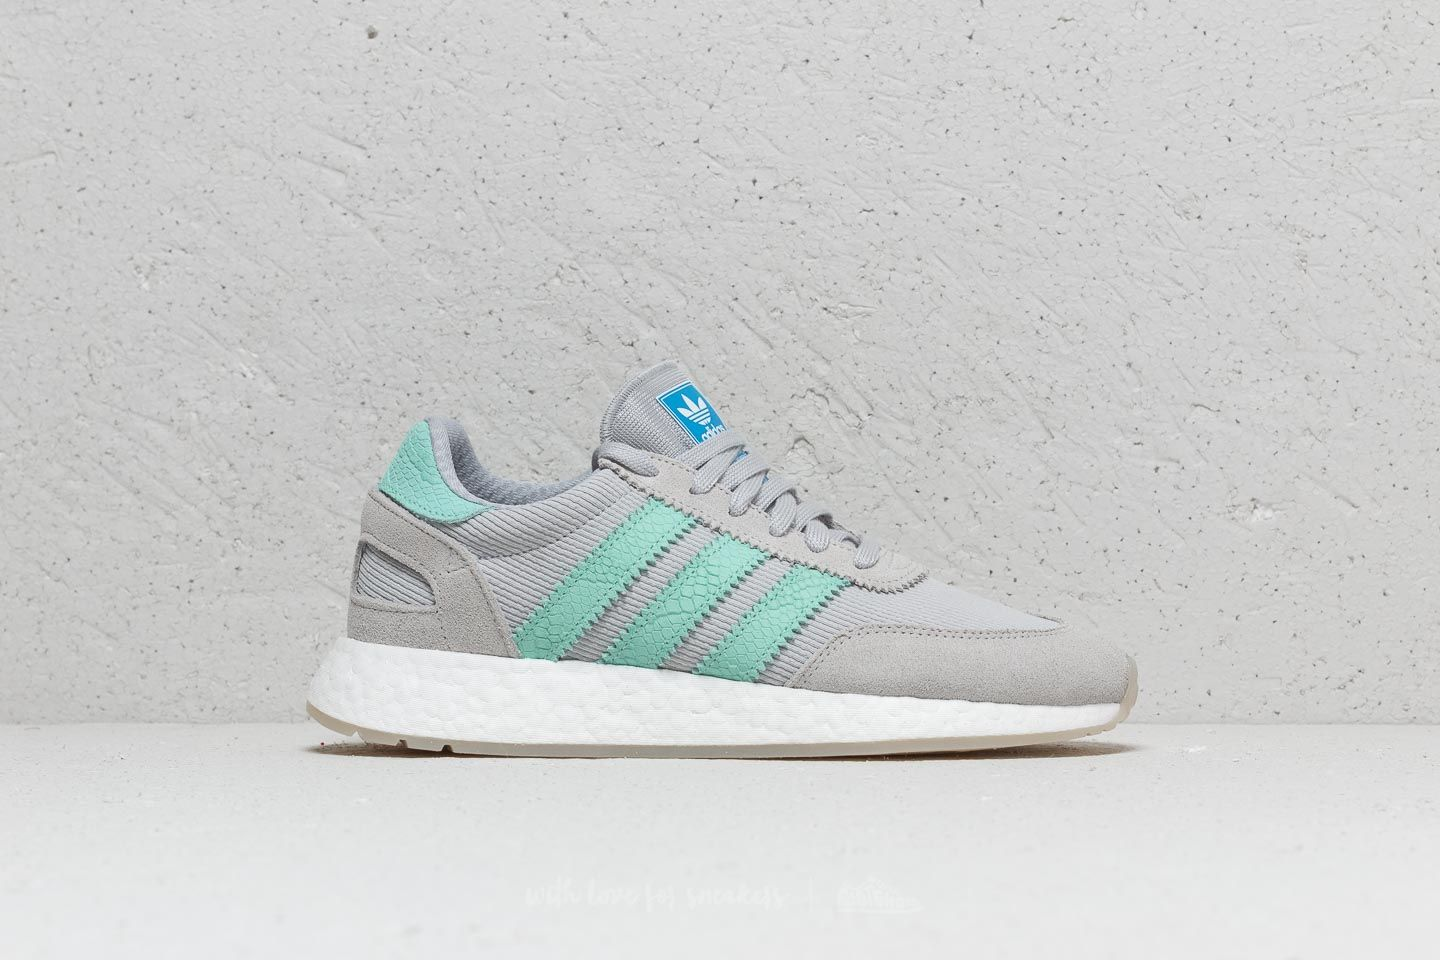 huge selection of 42d67 1bce7 adidas I-5923 W Grey Green White au meilleur prix 77 € Achetez